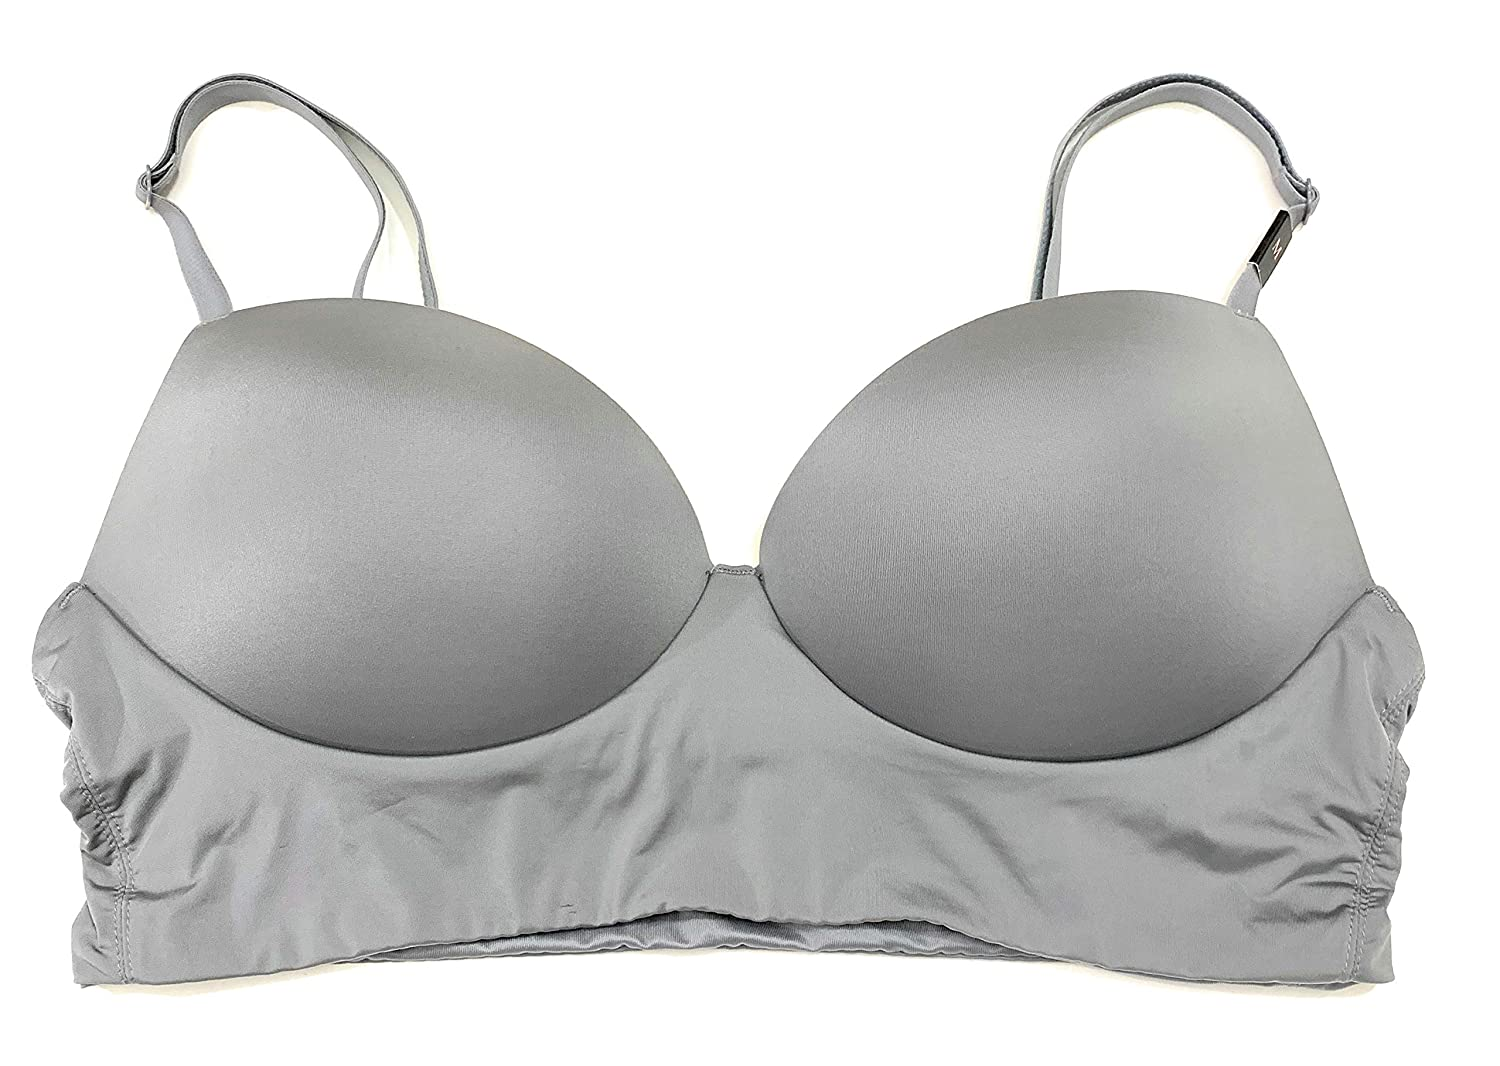 46cba819d9 Victoria s Secret Padded Demi Wireless Bralette Bra Medium Gray at ...